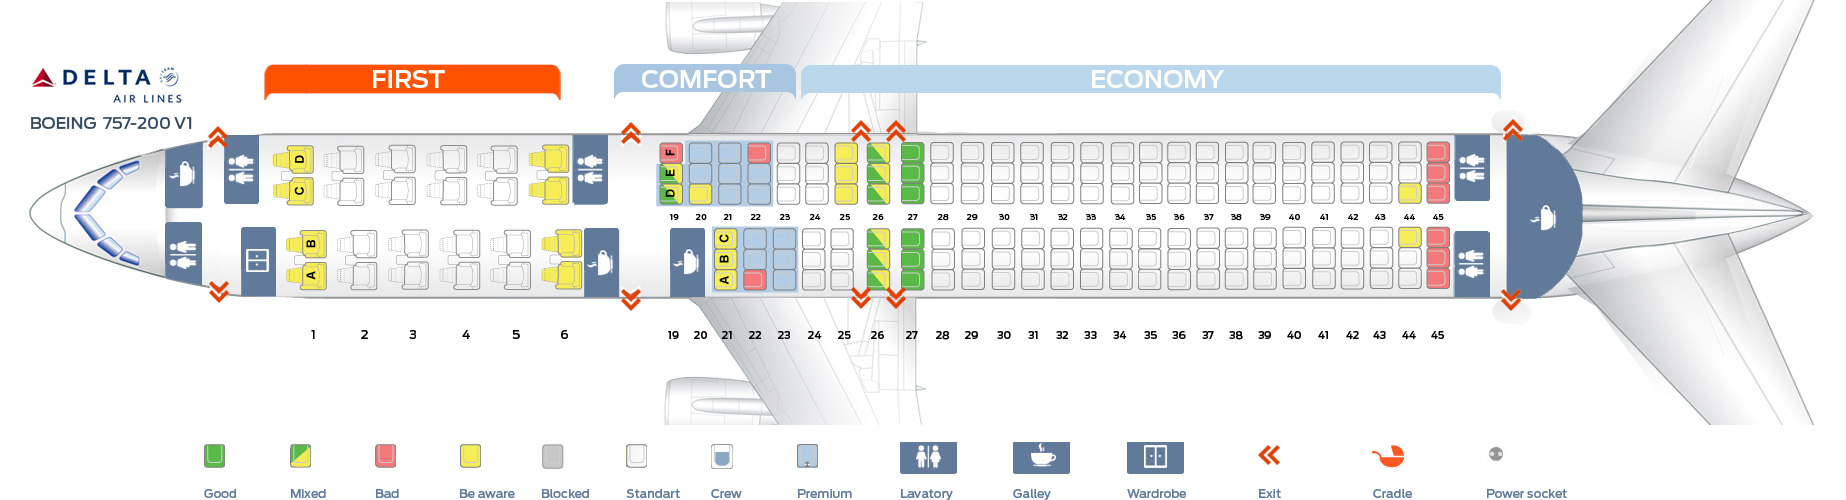 Delta boeing 757 seating chart bing images for Delta main cabin vs delta comfort